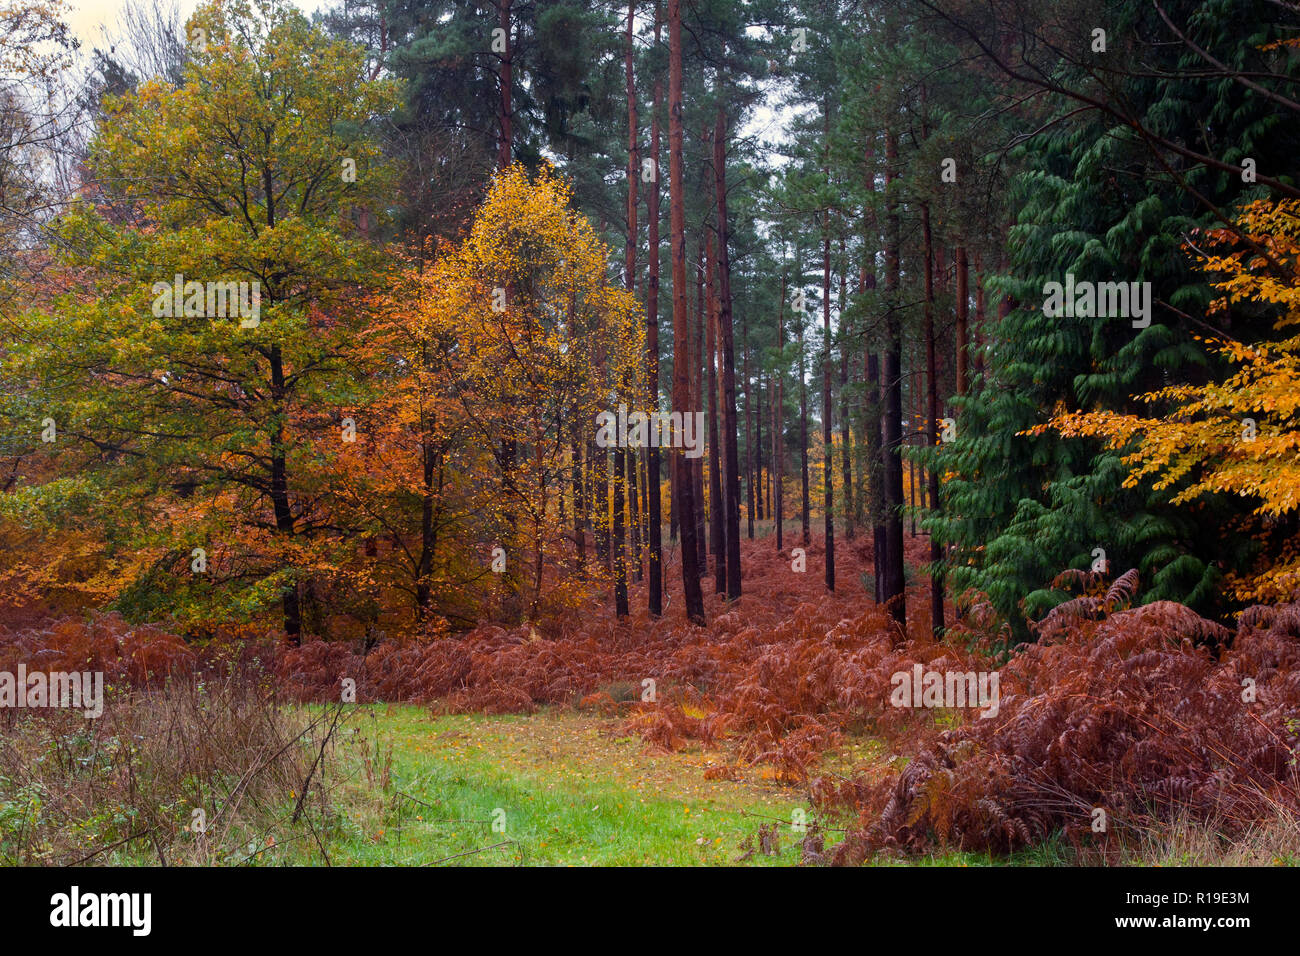 autumnal colours in Crooksbury woods on the road between Elstead & Seale, near Farnham & Godalming, Surrey, England Stock Photo